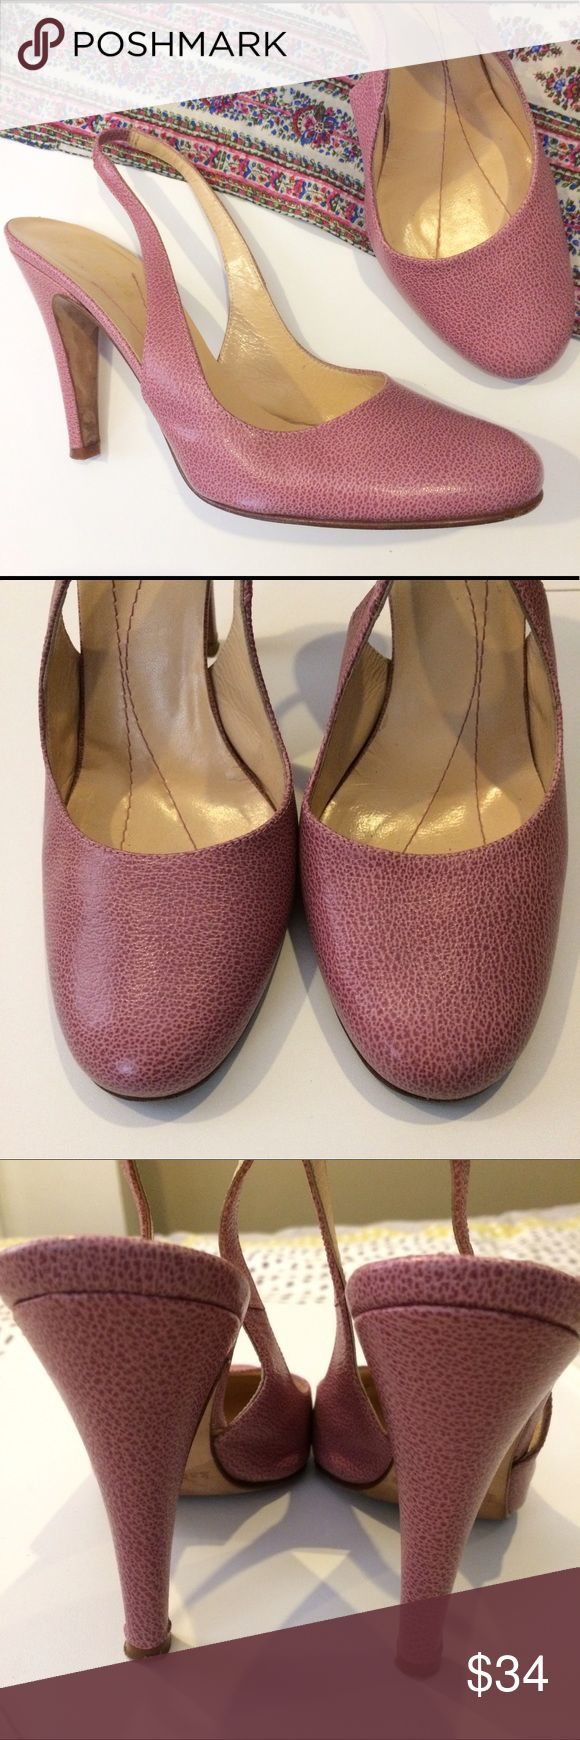 Kate Spade Pebbled Leather Slingback Heels Dusty rose colored heels in gently used condition. The bottoms show some wear, but otherwise still look great! Elastic at the back make these comfortable on the heels. kate spade Shoes Heels